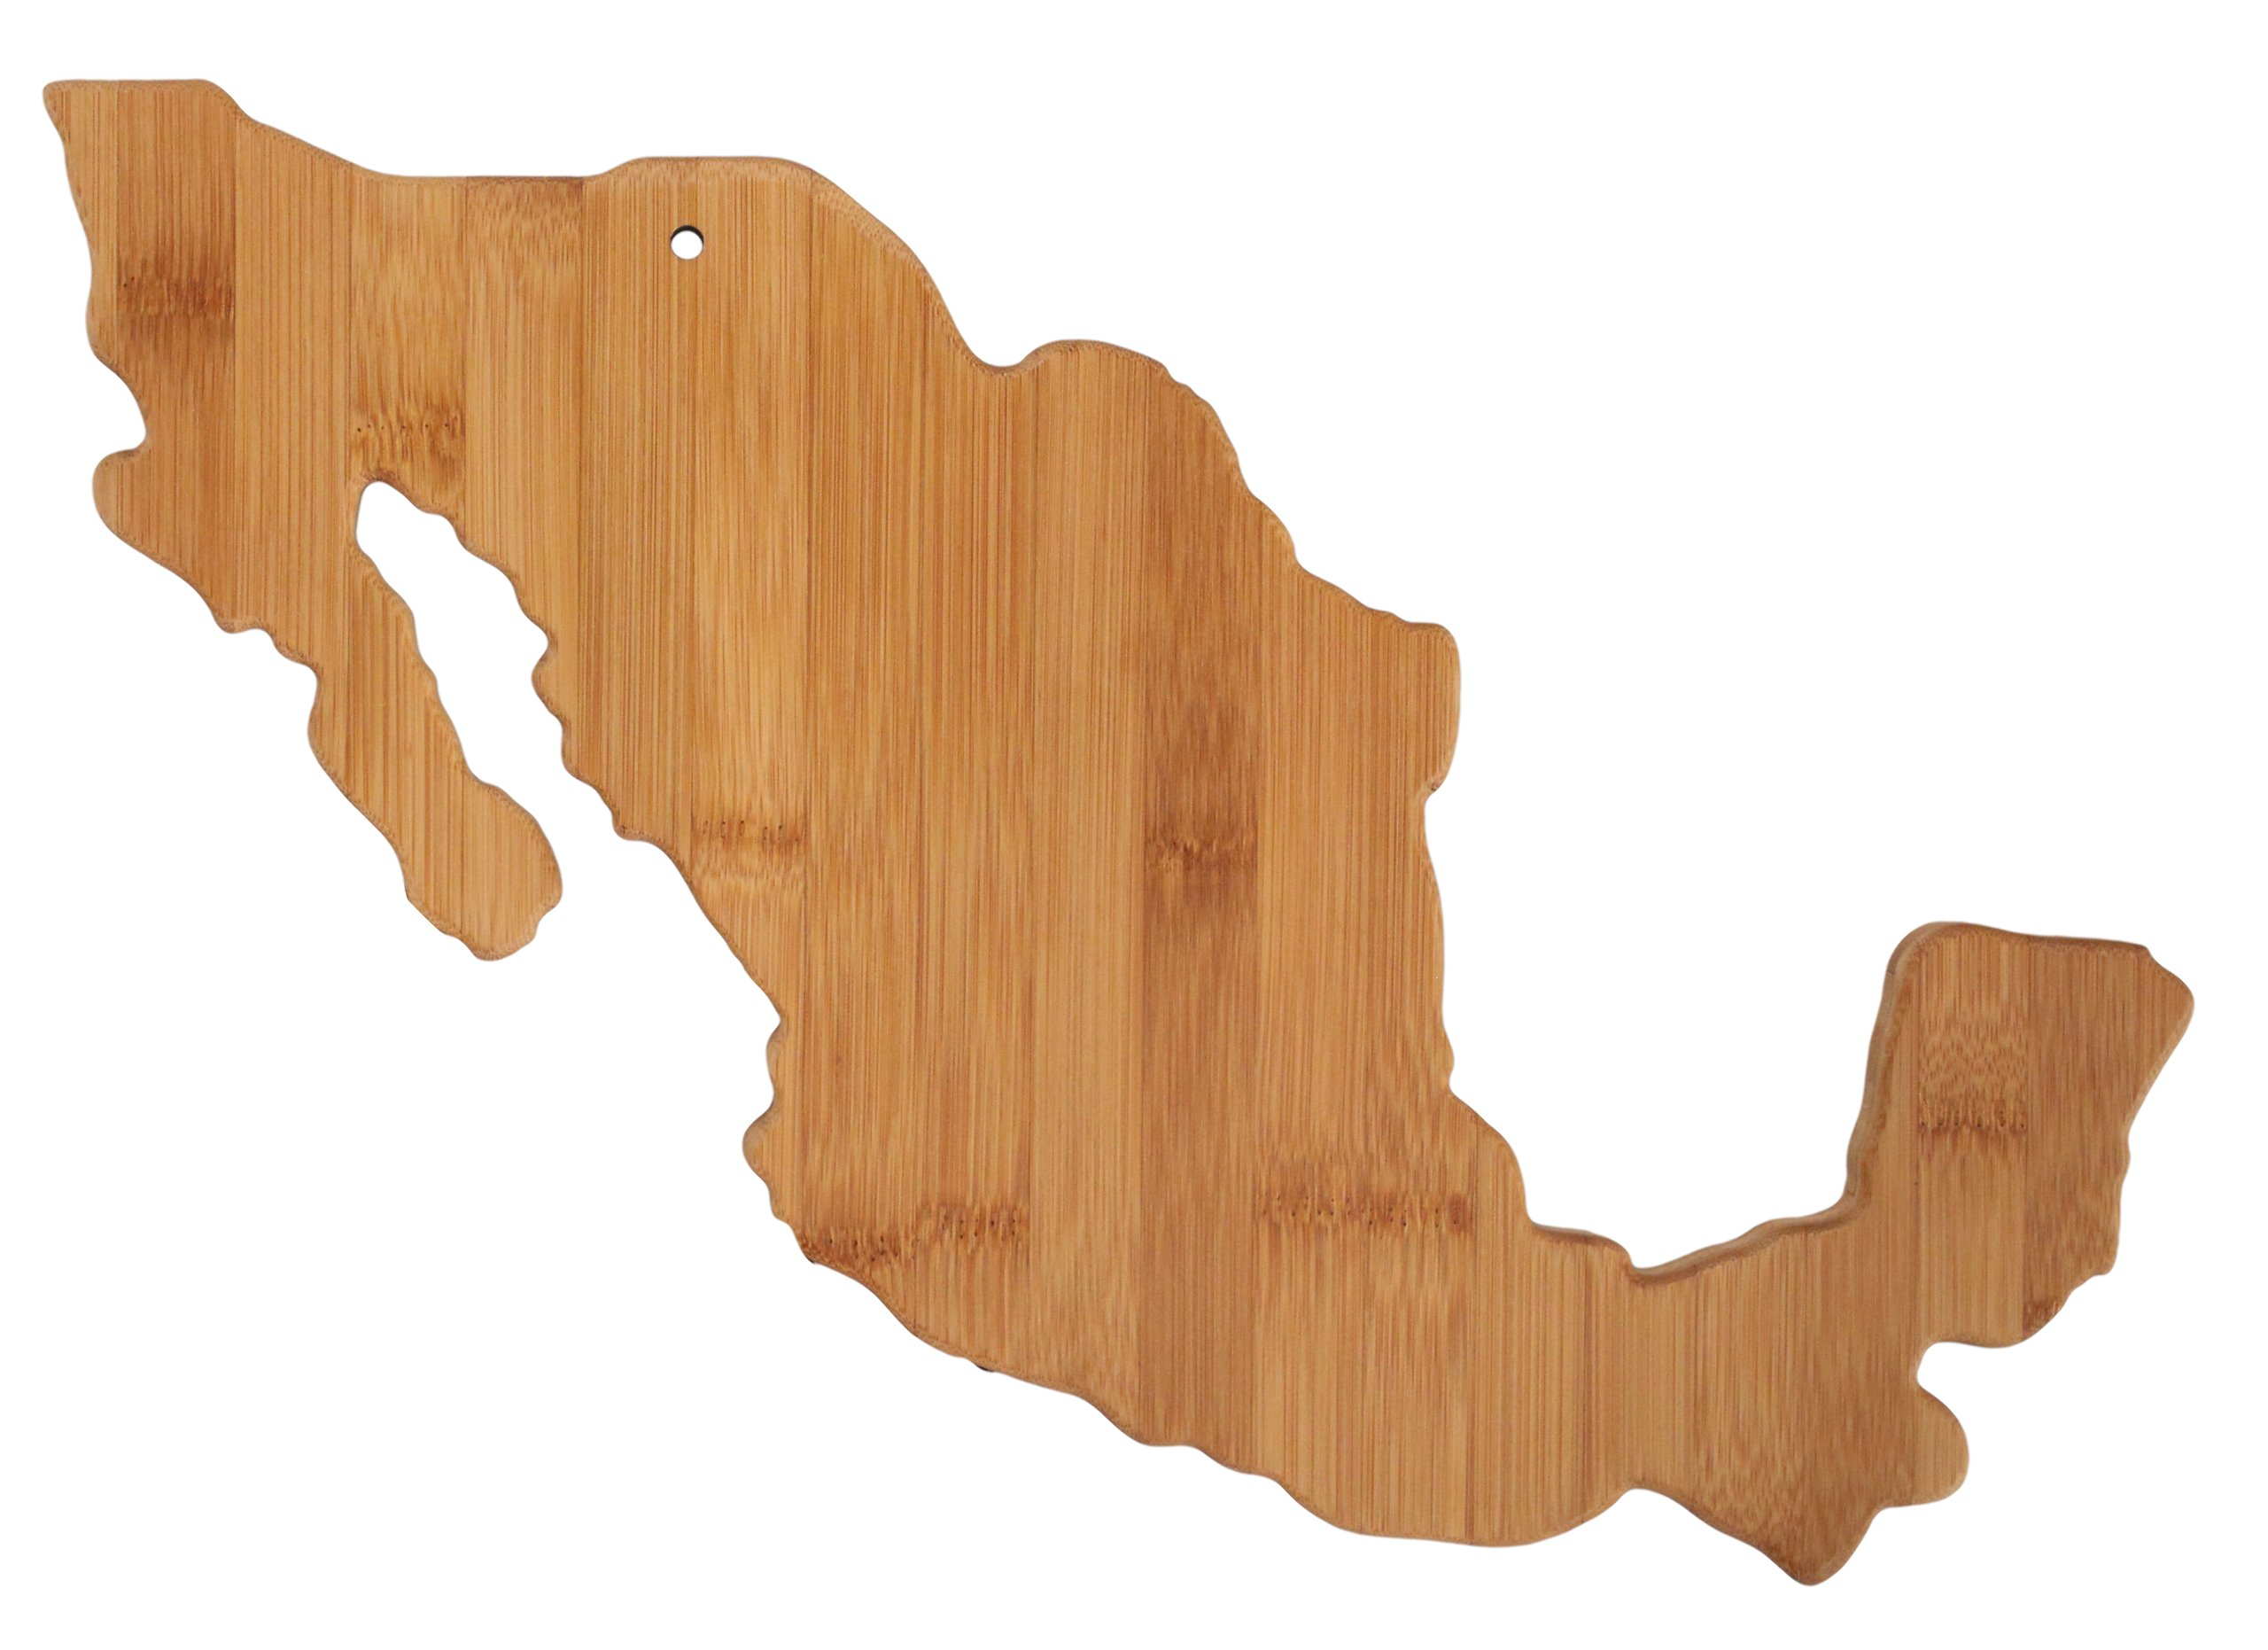 Totally Bamboo Country Cutting & Serving Board, Mexico, 100% Bamboo Board for Cooking and Entertaining